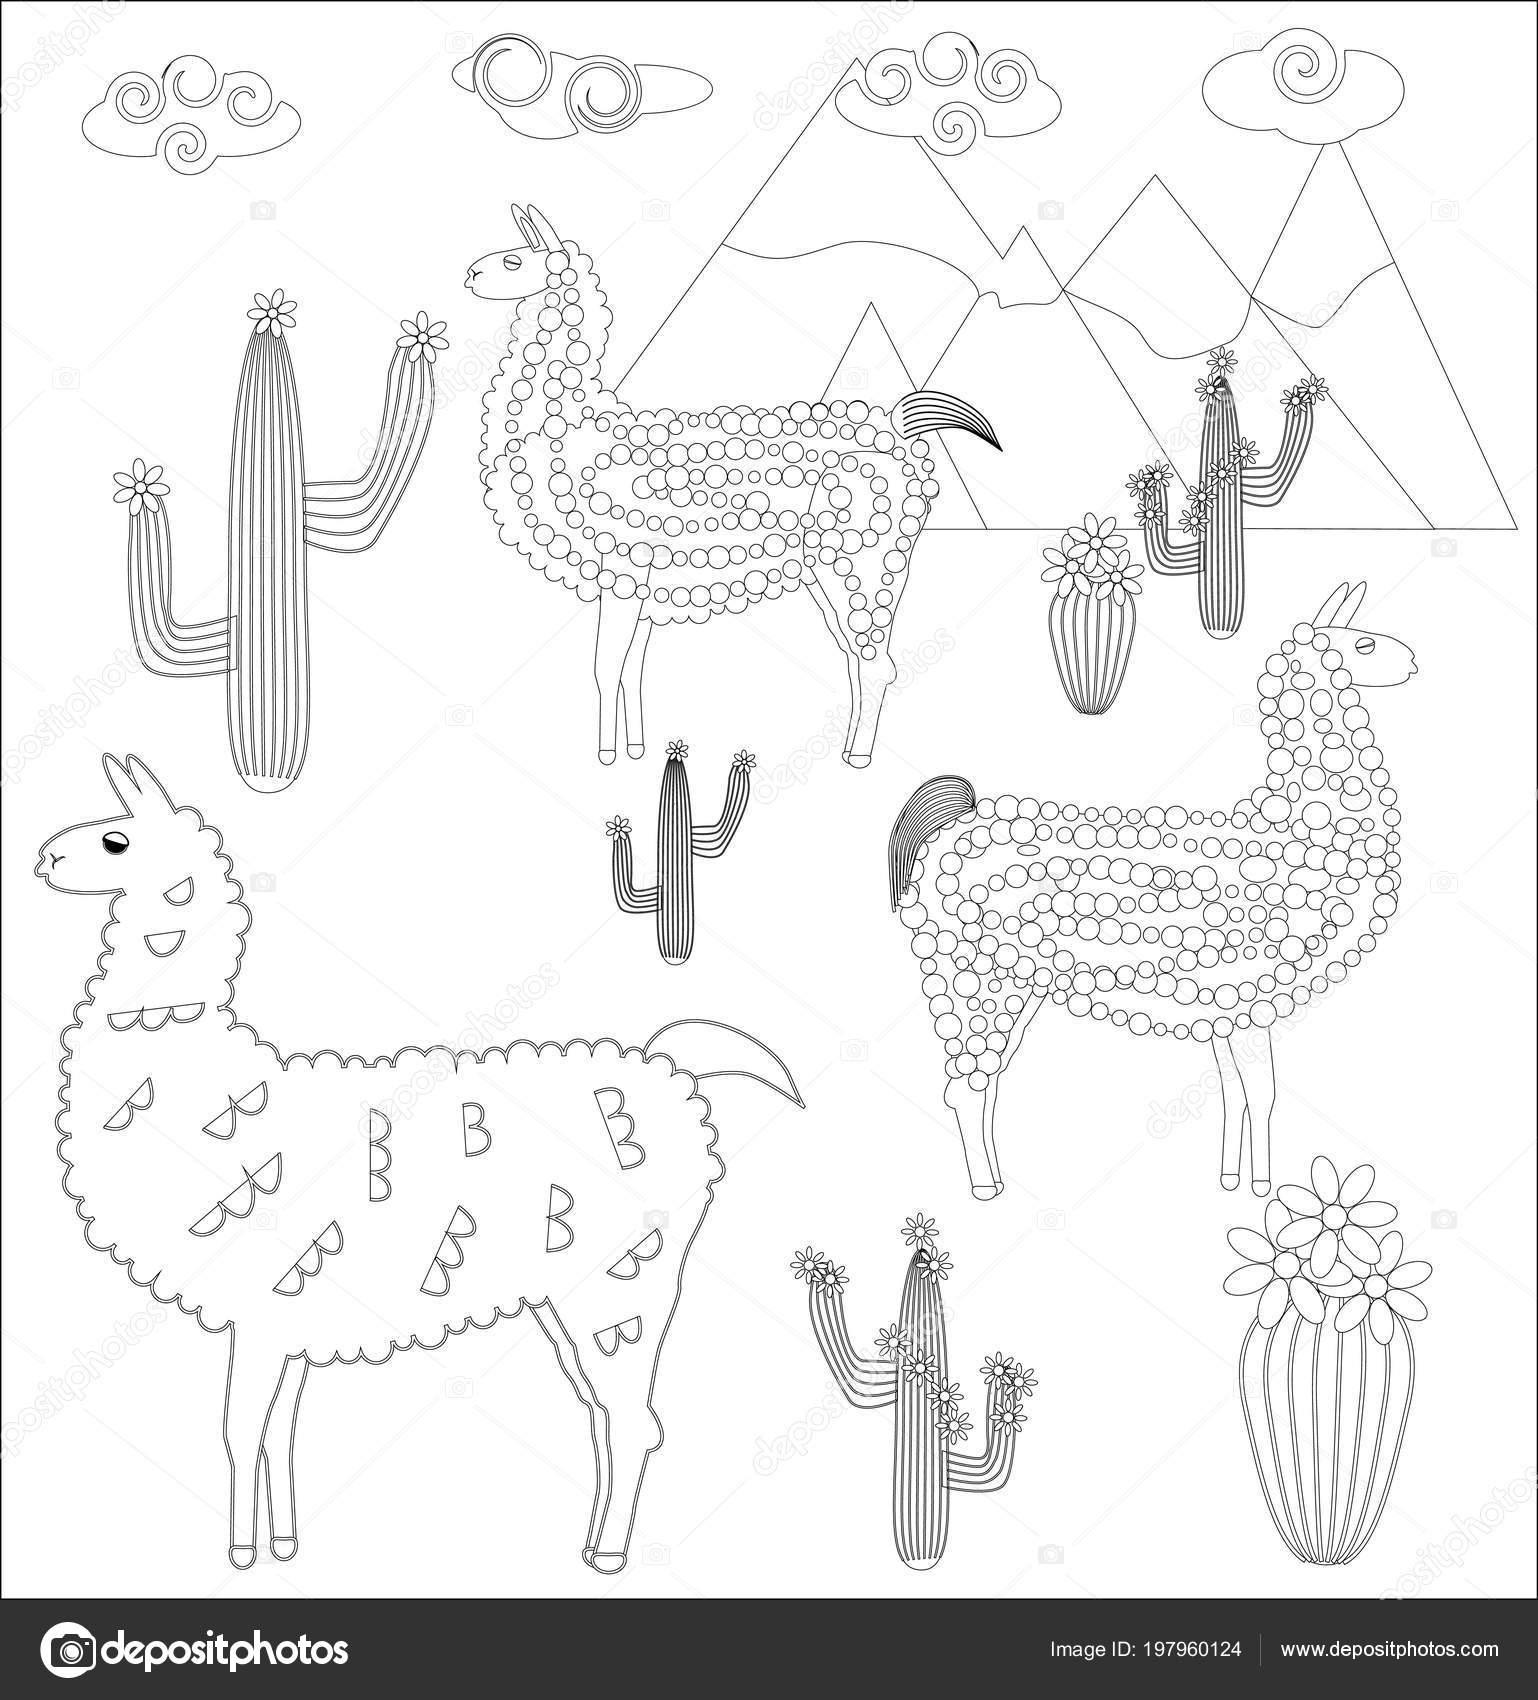 Coloring Page Of Cartoon Lama. Illustration, Coloring Book For ... | 1700x1538